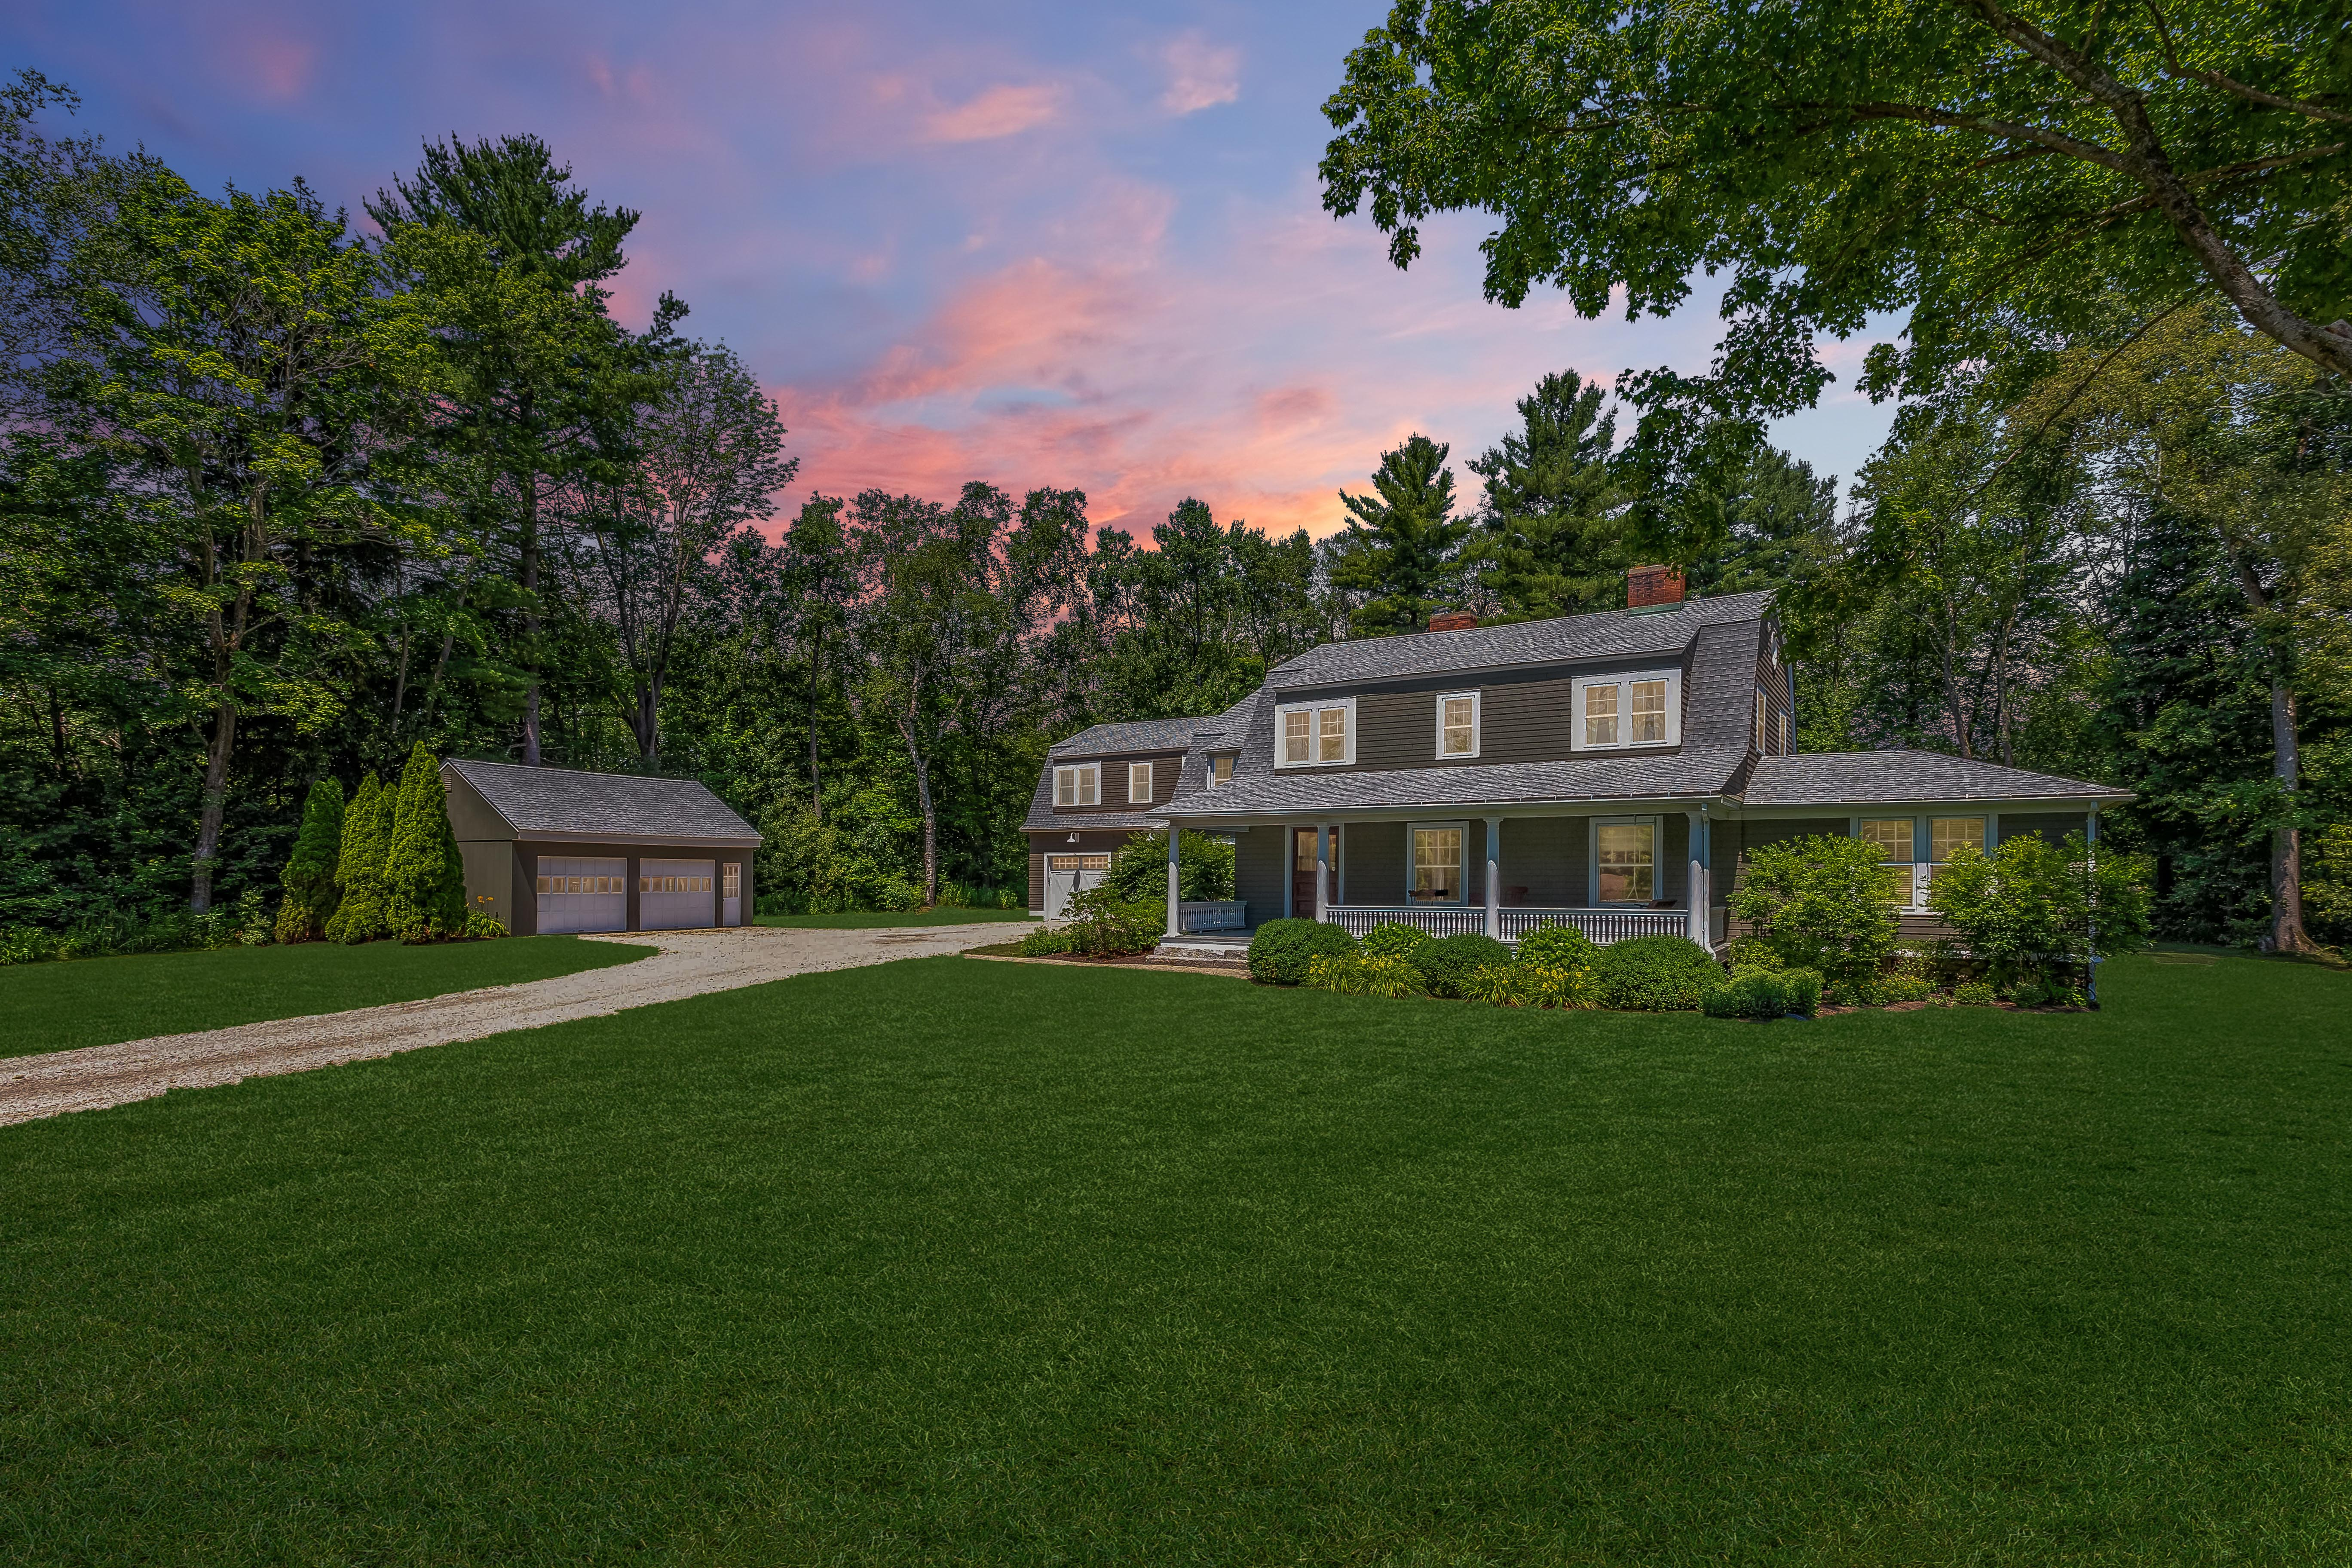 Casa unifamiliar en venta en/de 66 Tallmadge Lane, Litchfield, Connecticut ,06759  , EUA